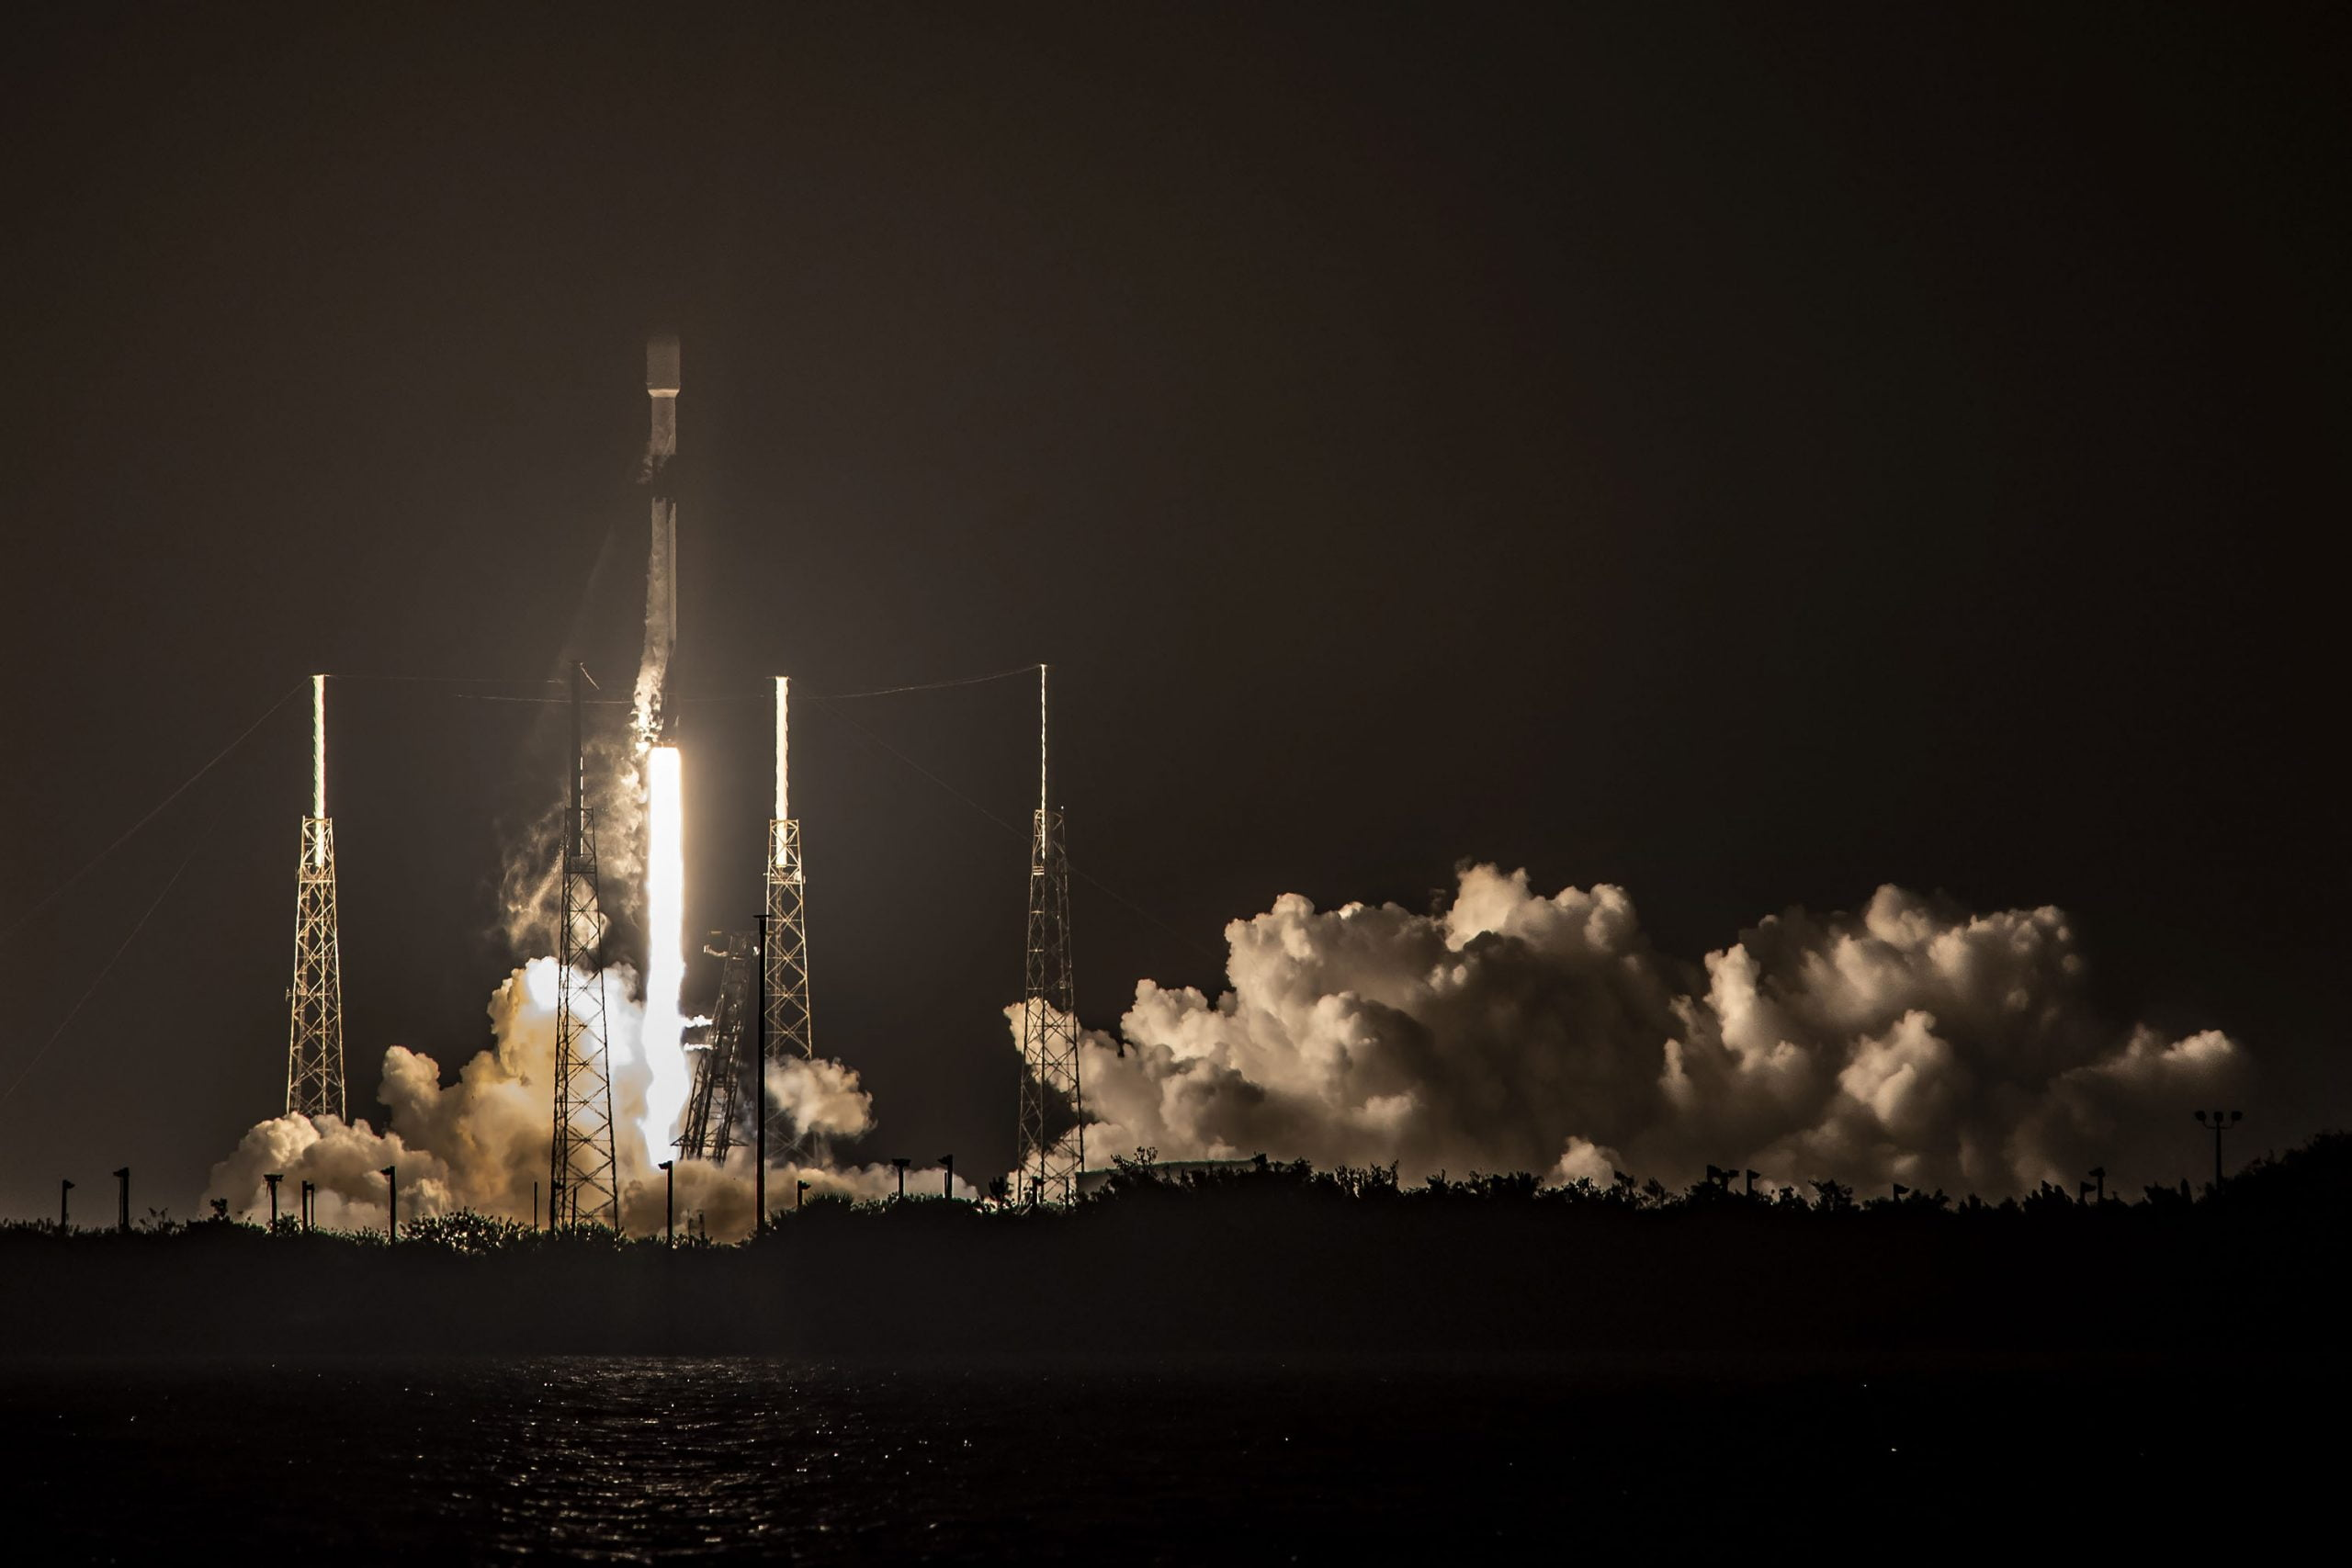 SpaceX launches Starlink mission by sending Falcon 9 for a record 7th time